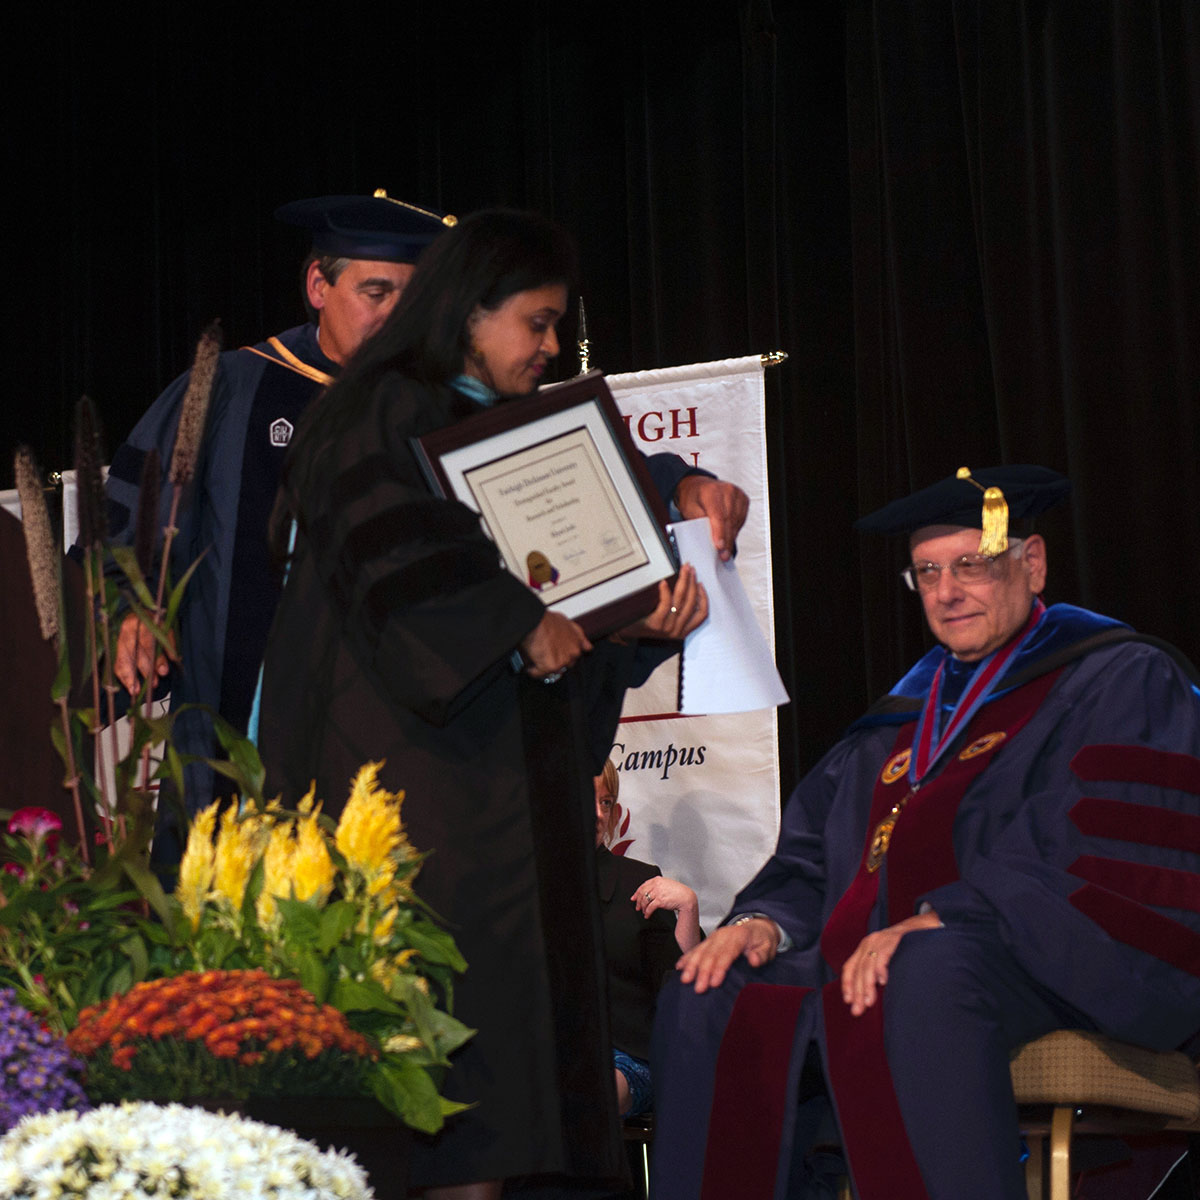 Dr. Joshi after accepting an award at Fairleigh Dickinson University's convocation